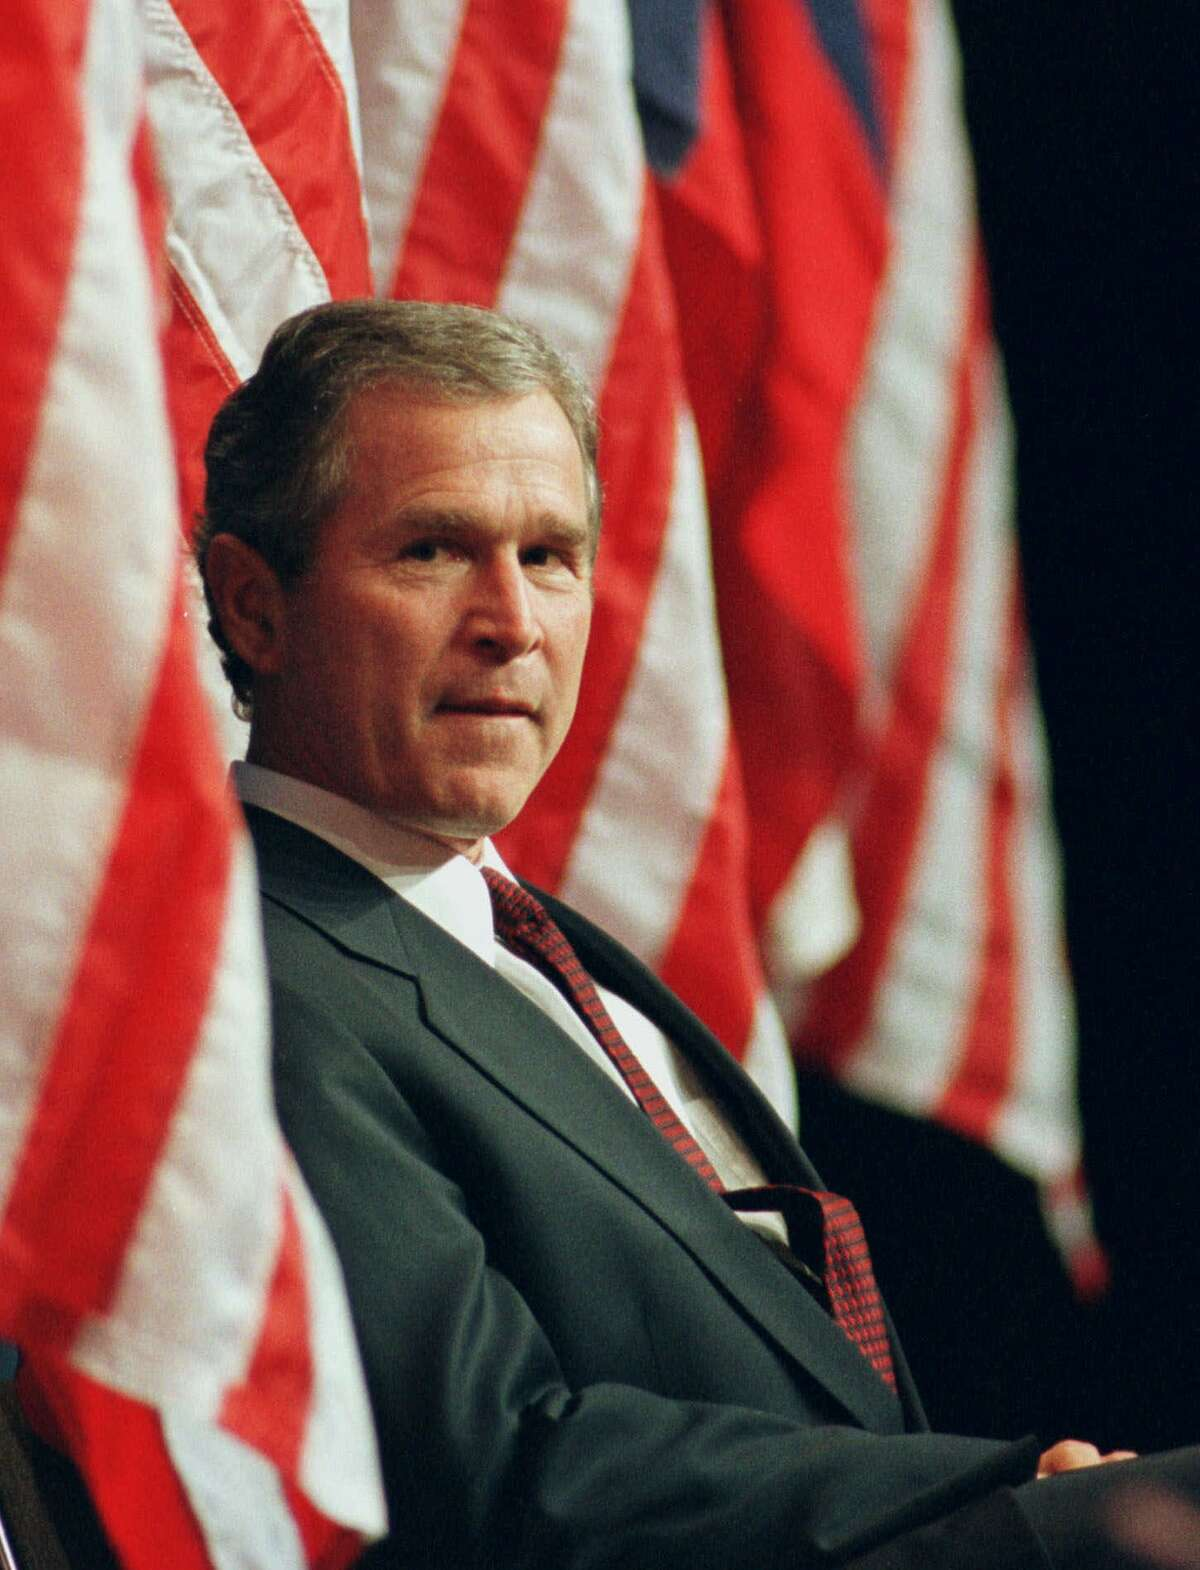 Texas Gov. George W. Bush is flanked by U.S. flags on stage at the Convention Center in Austin, Texas, on Sunday March 7, 1999. (AP Photo Harry Cabluck)